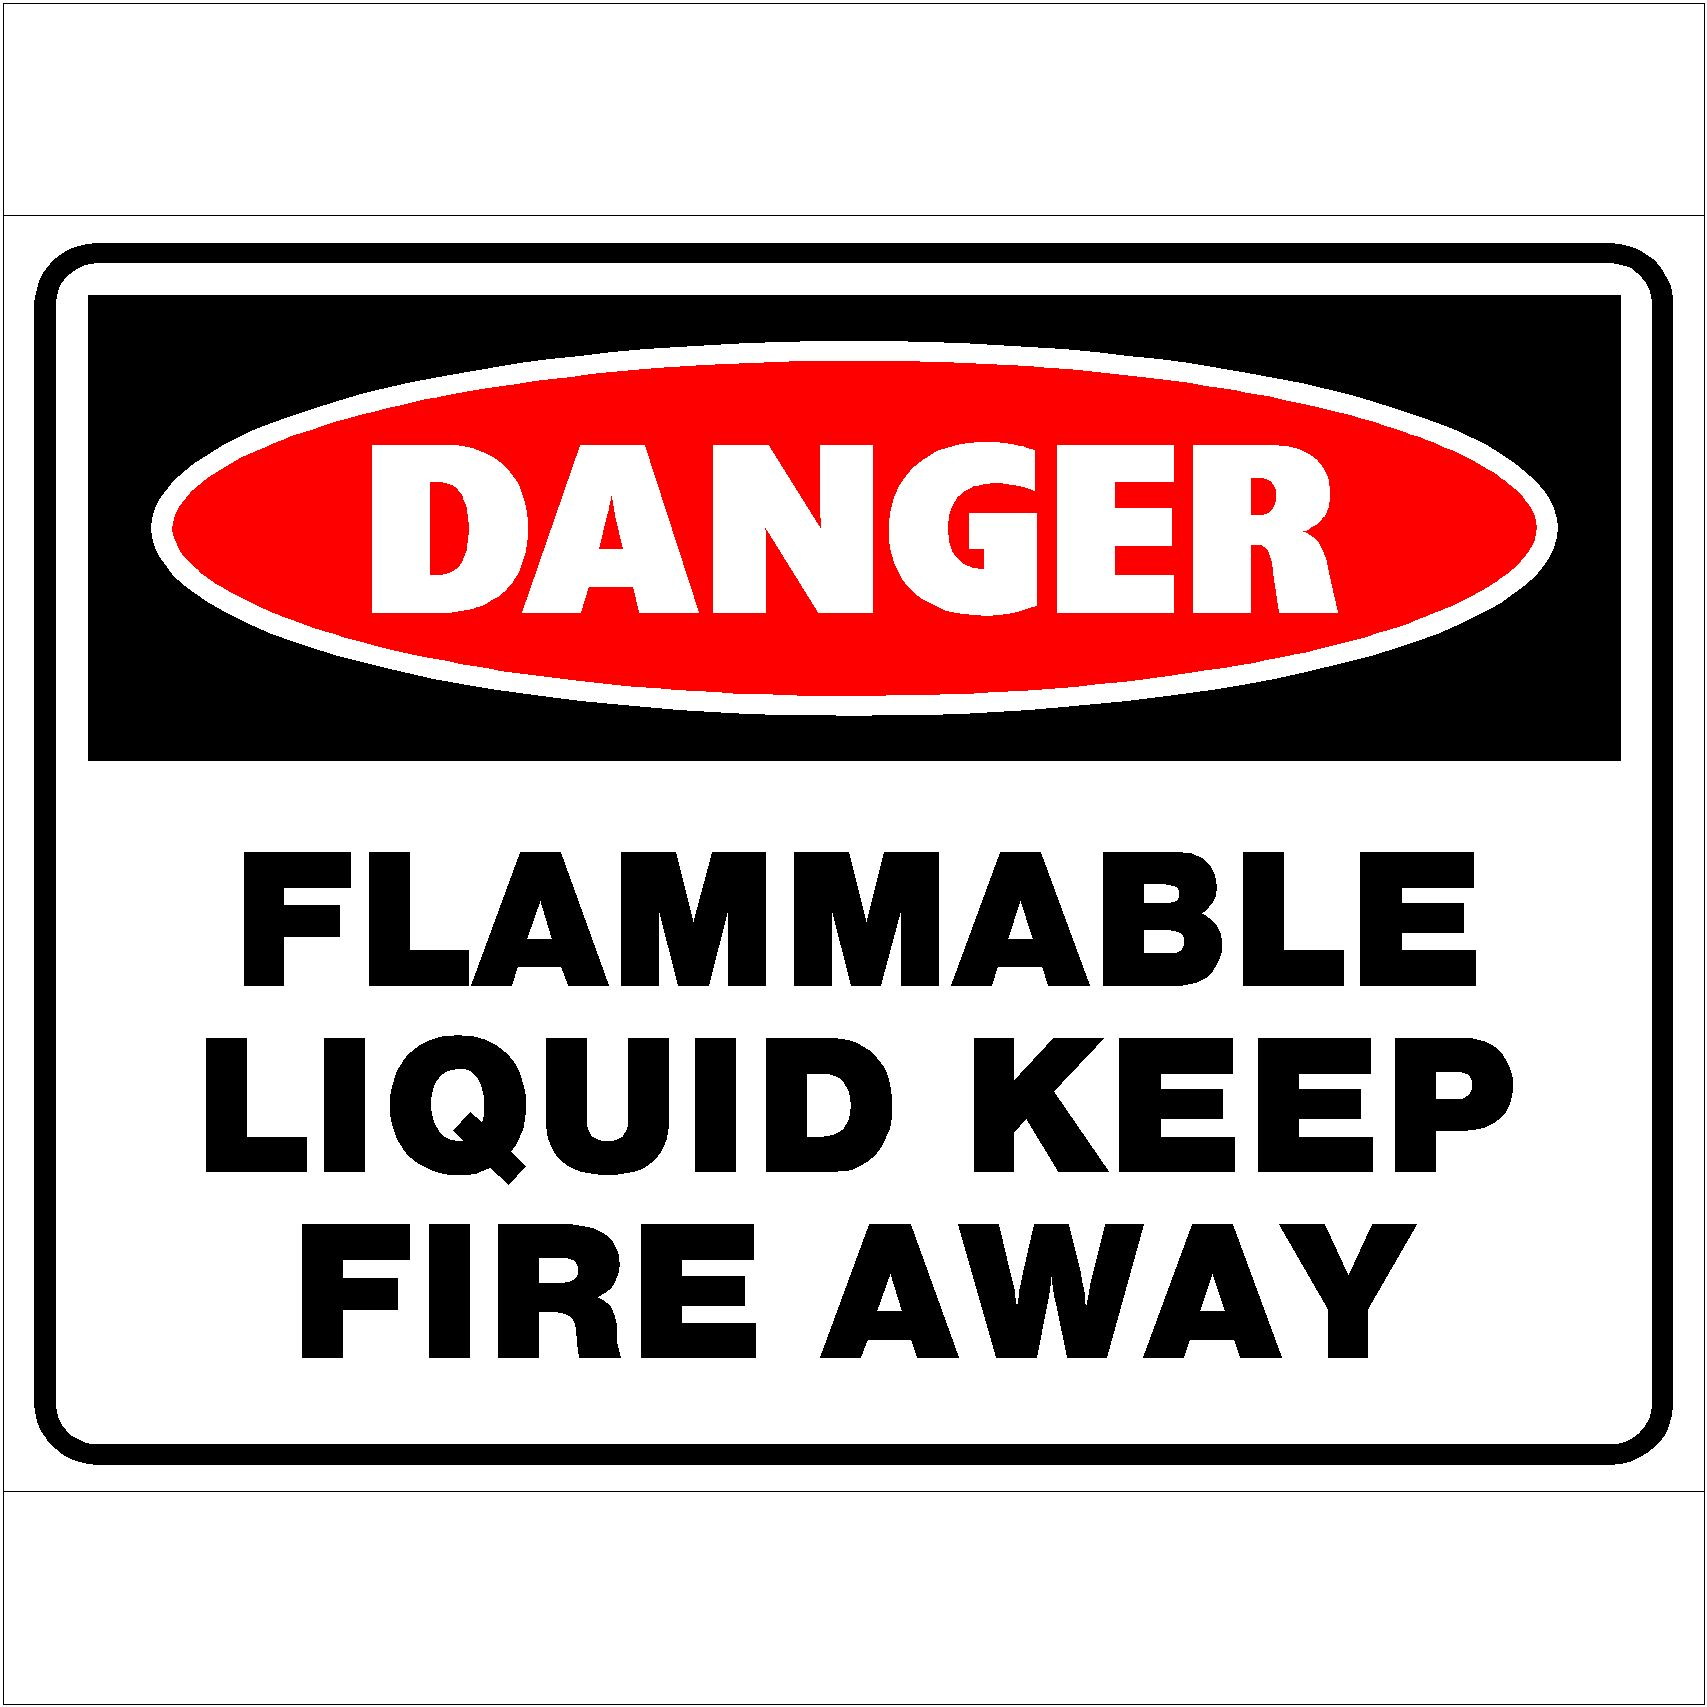 Danger Flammable Liquid Keep Fire Away